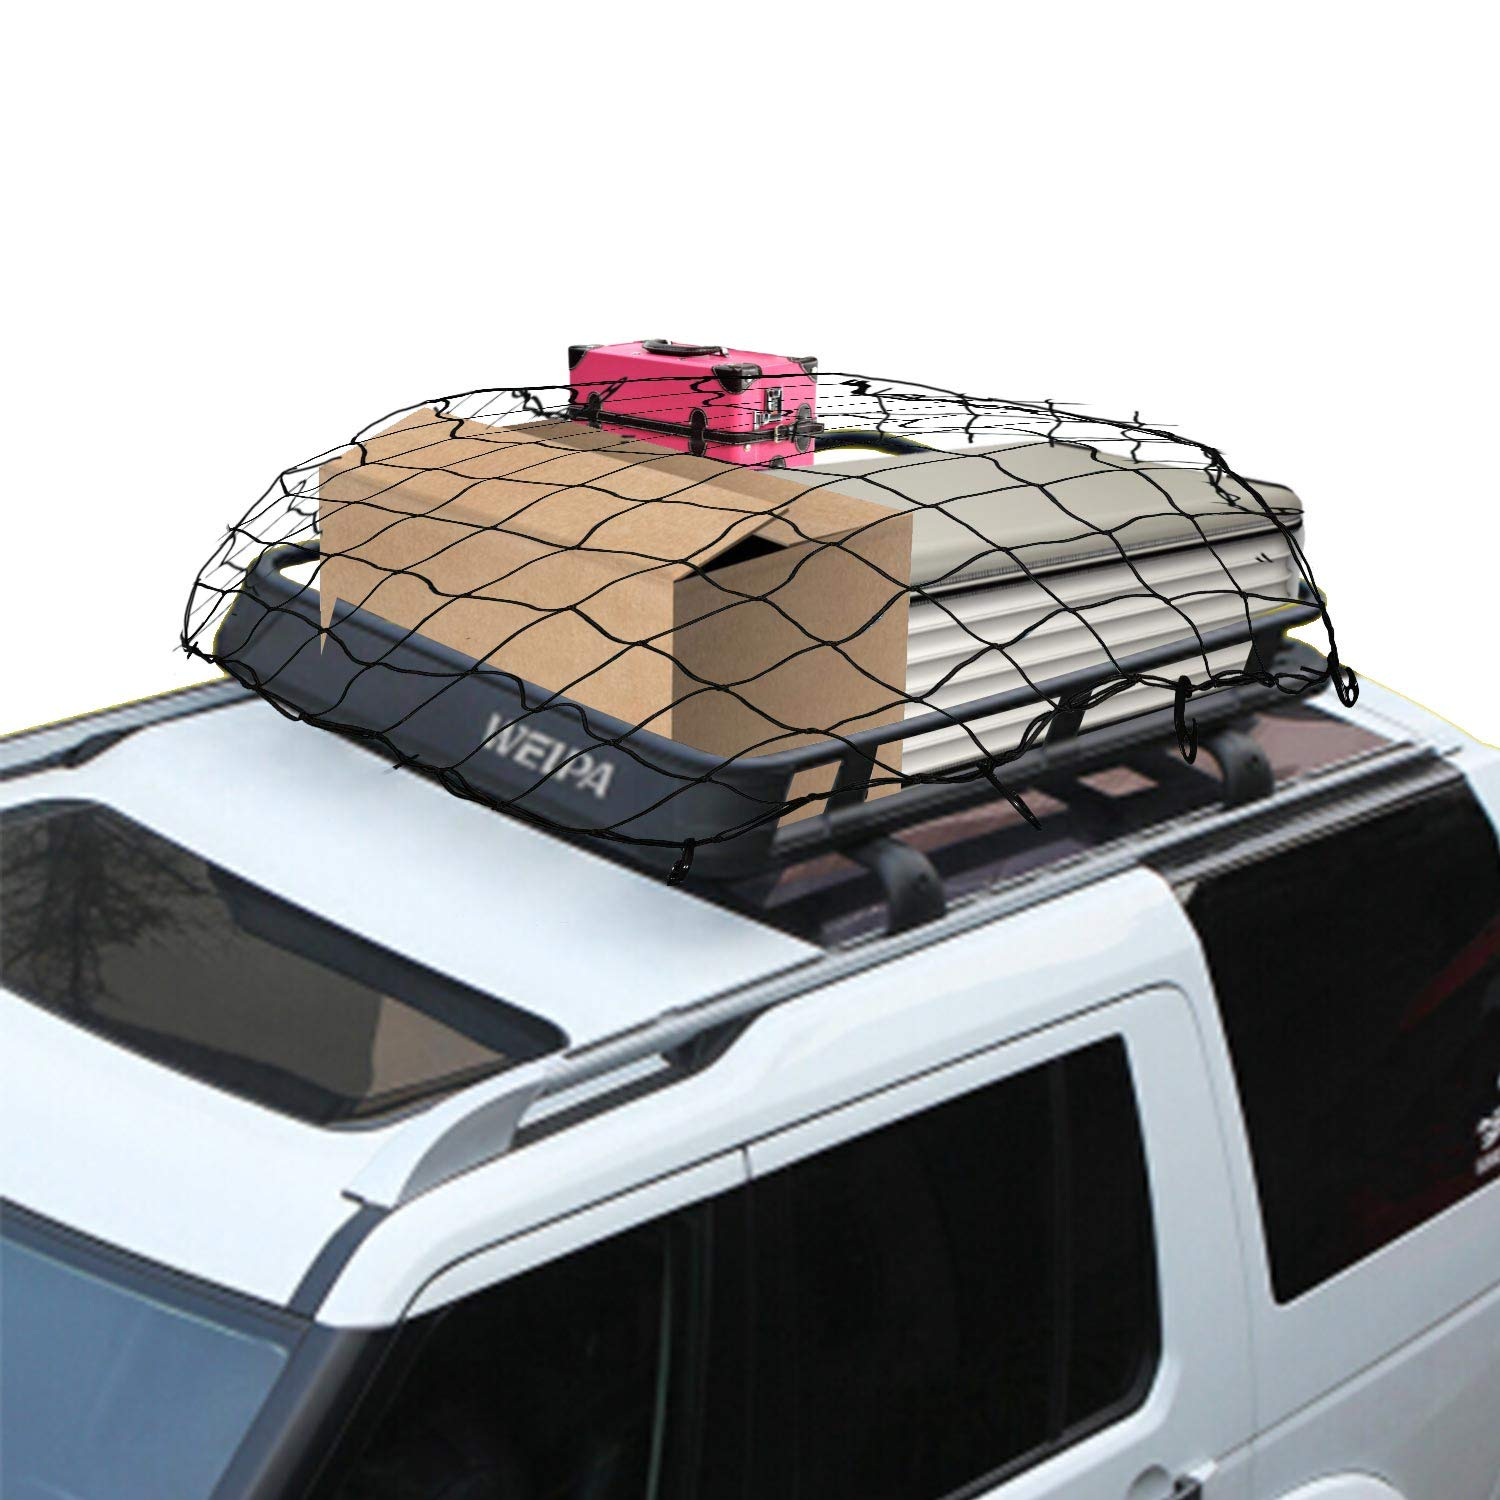 4mm Cord DogXiong 3x4 to 6x8 Pickup Cargo Net with 12 Nylon Hooks for Pickup Truck Bed and SUV Rooftop Travel Luggage Rack et 3.2 x 3.2 Tight Mesh